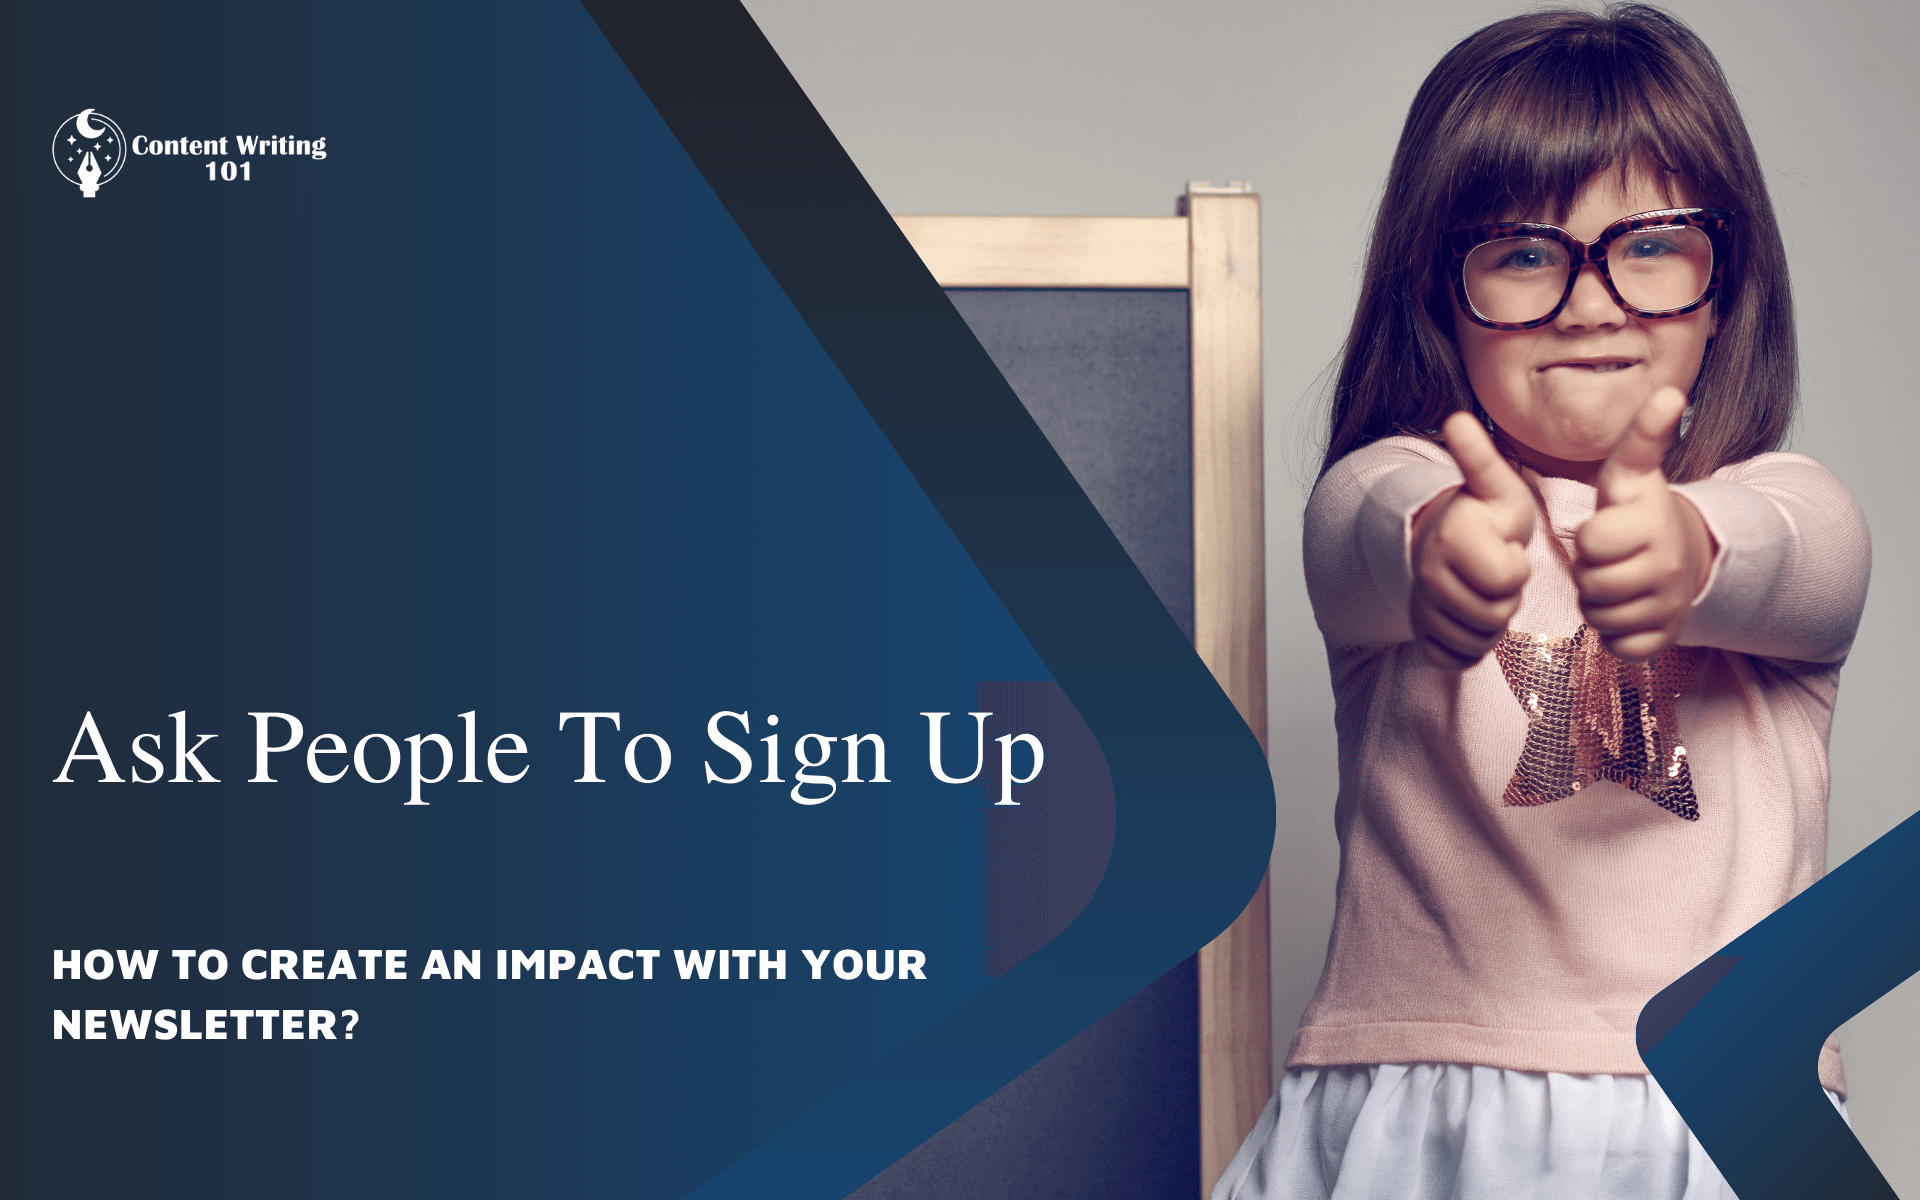 Ask People To Sign Up